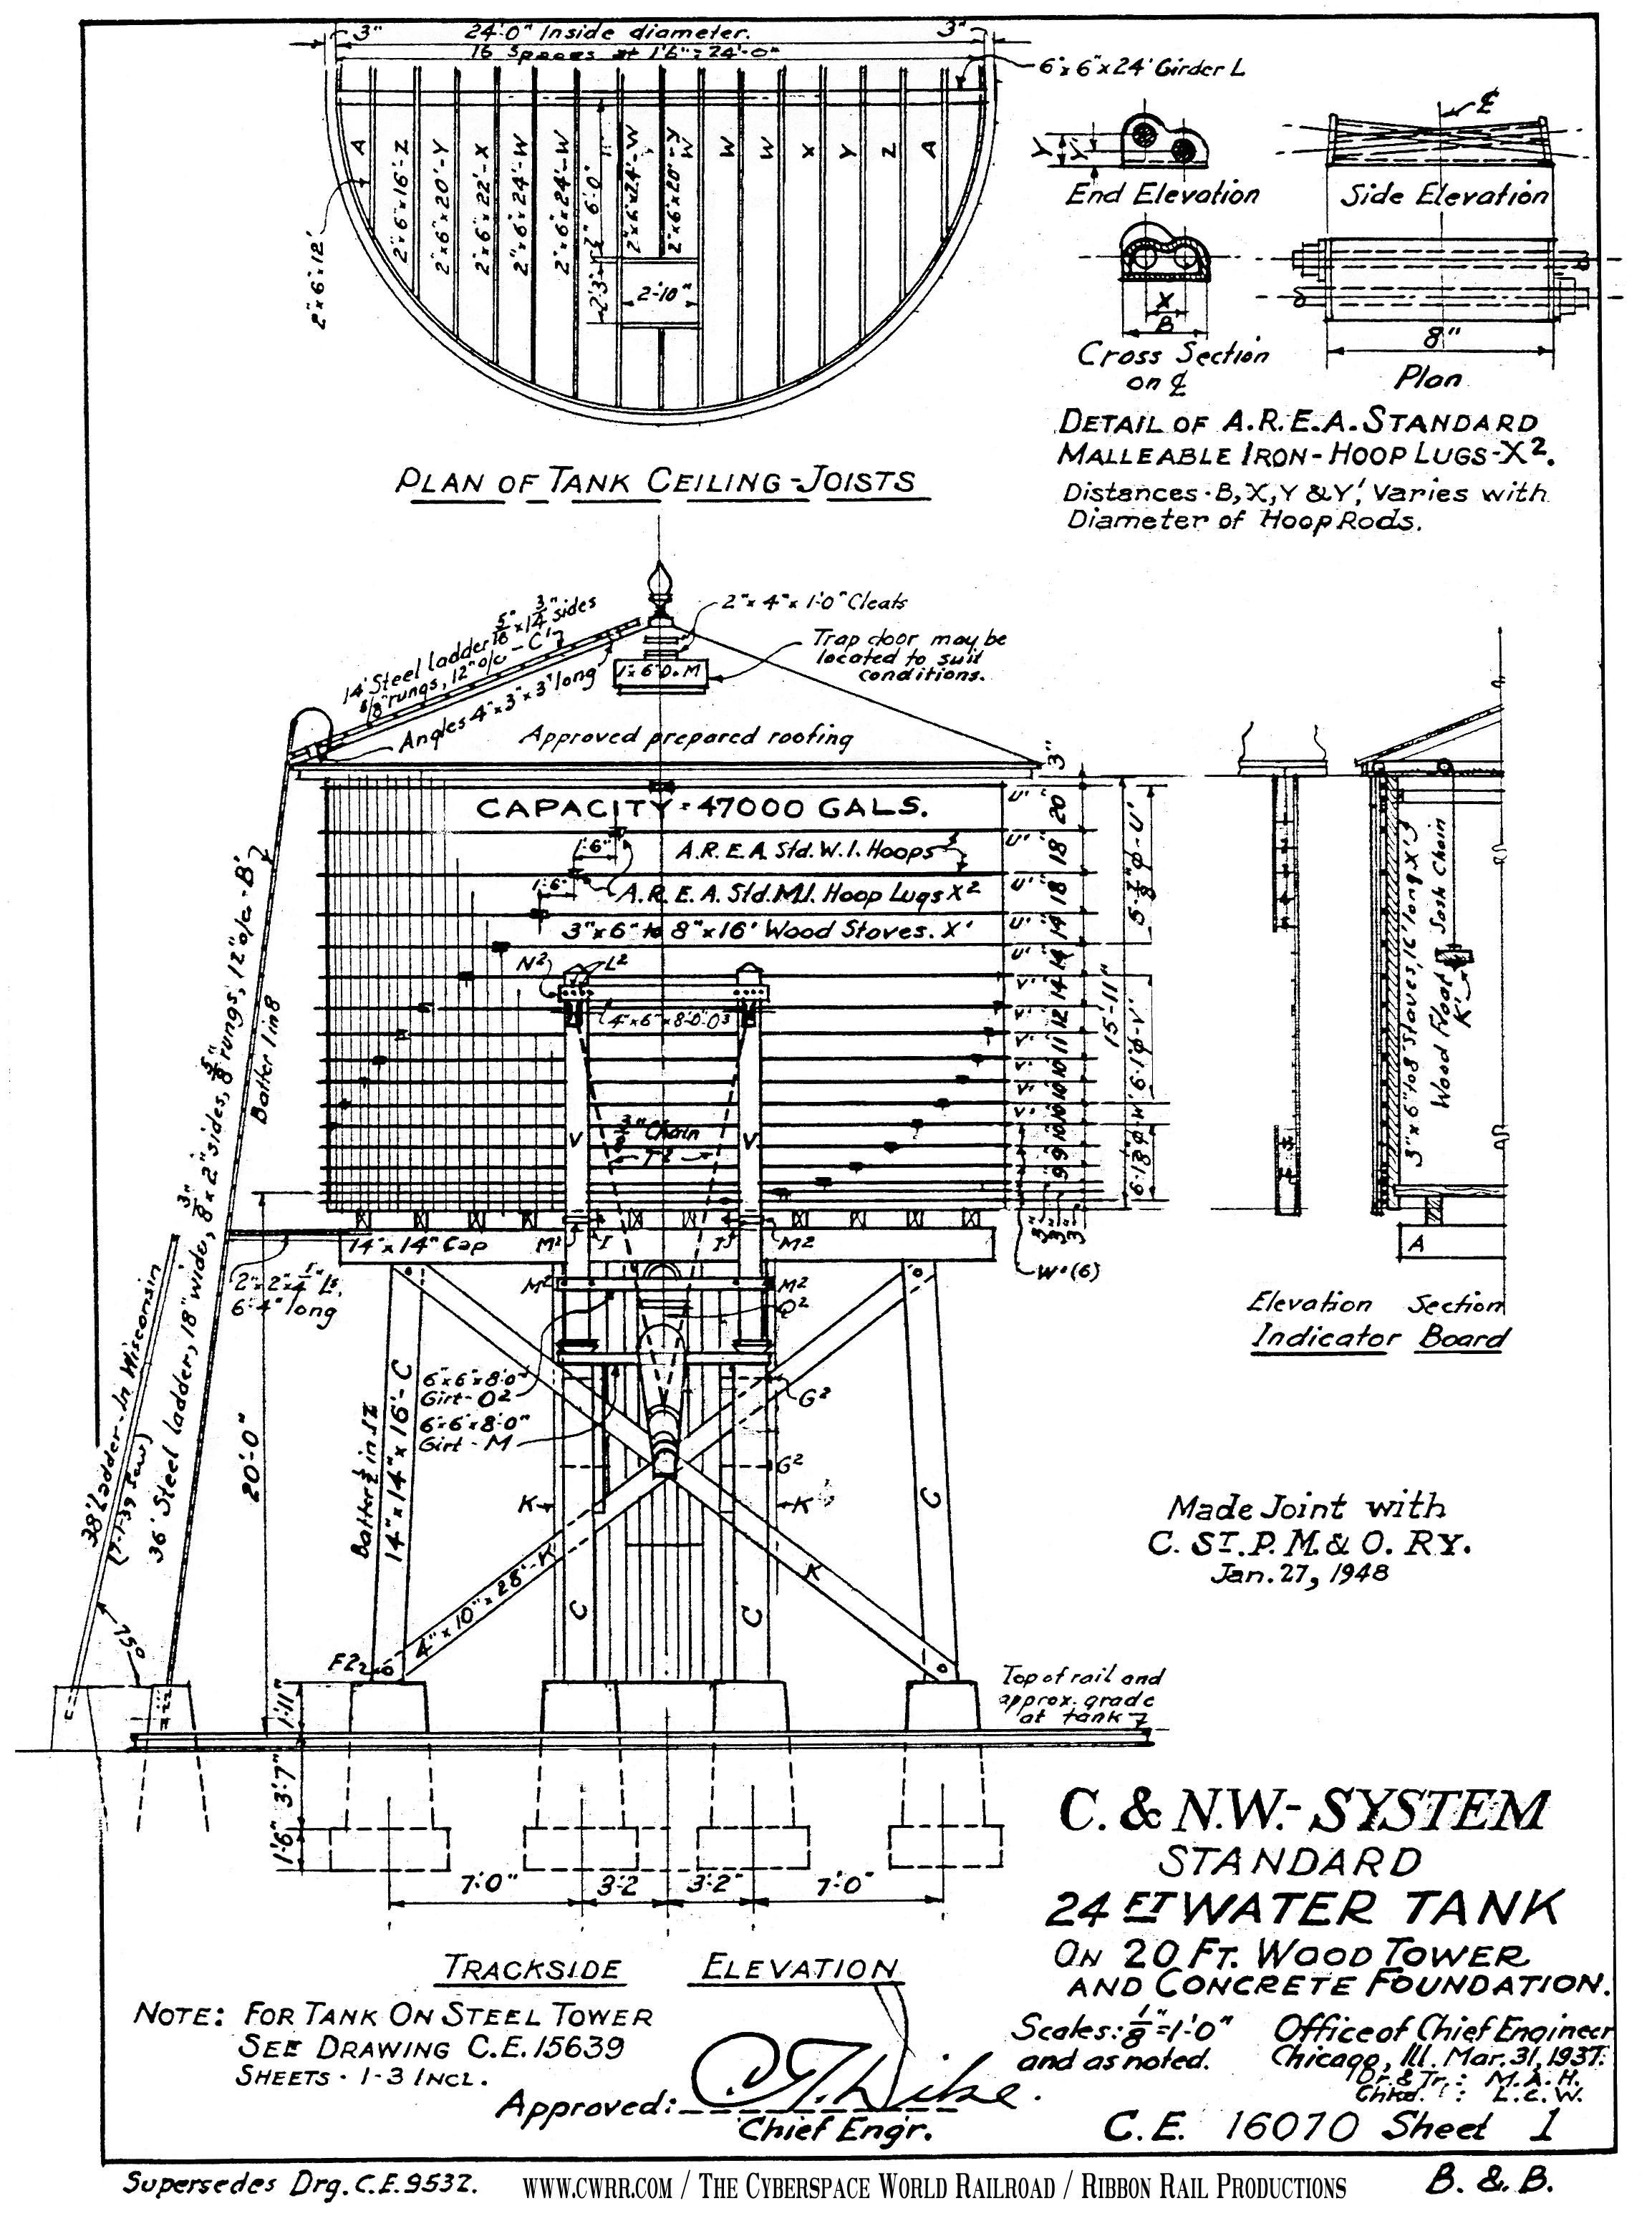 Water Tower Sheet 1 Trackside Elevation